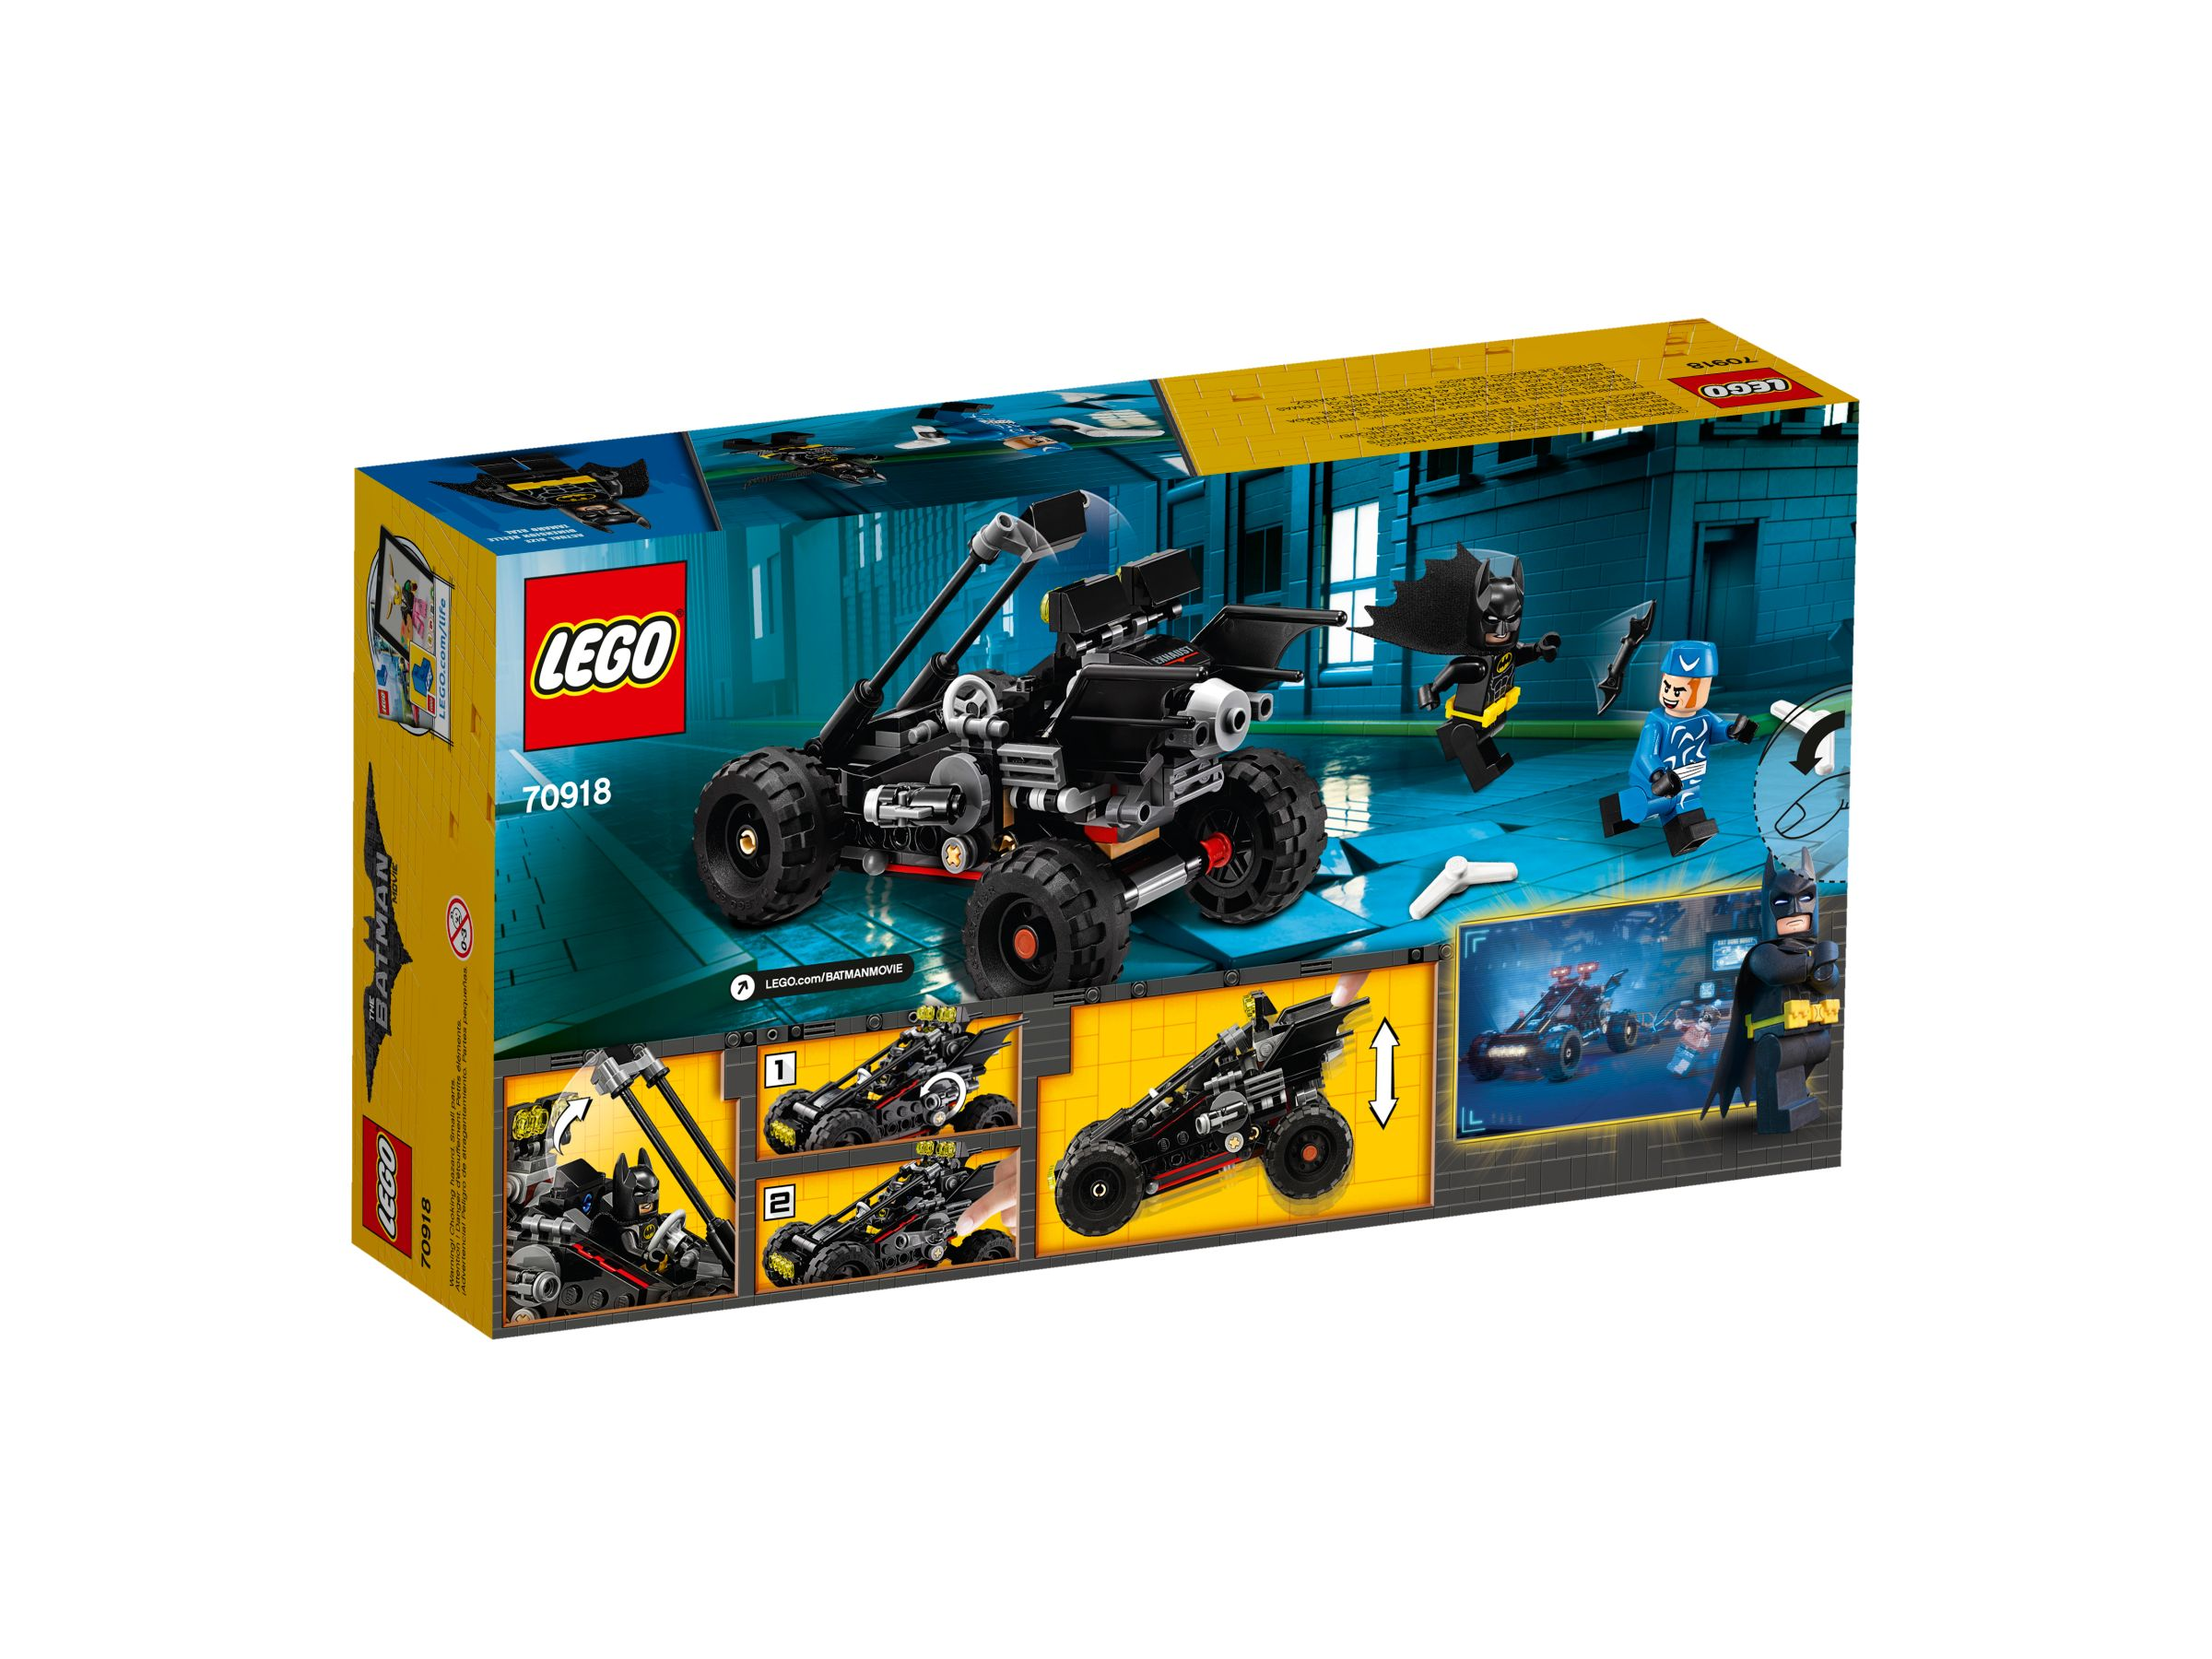 LEGO The LEGO Batman Movie 70918 Batman Dünenbuggy LEGO_70918_alt2.jpg